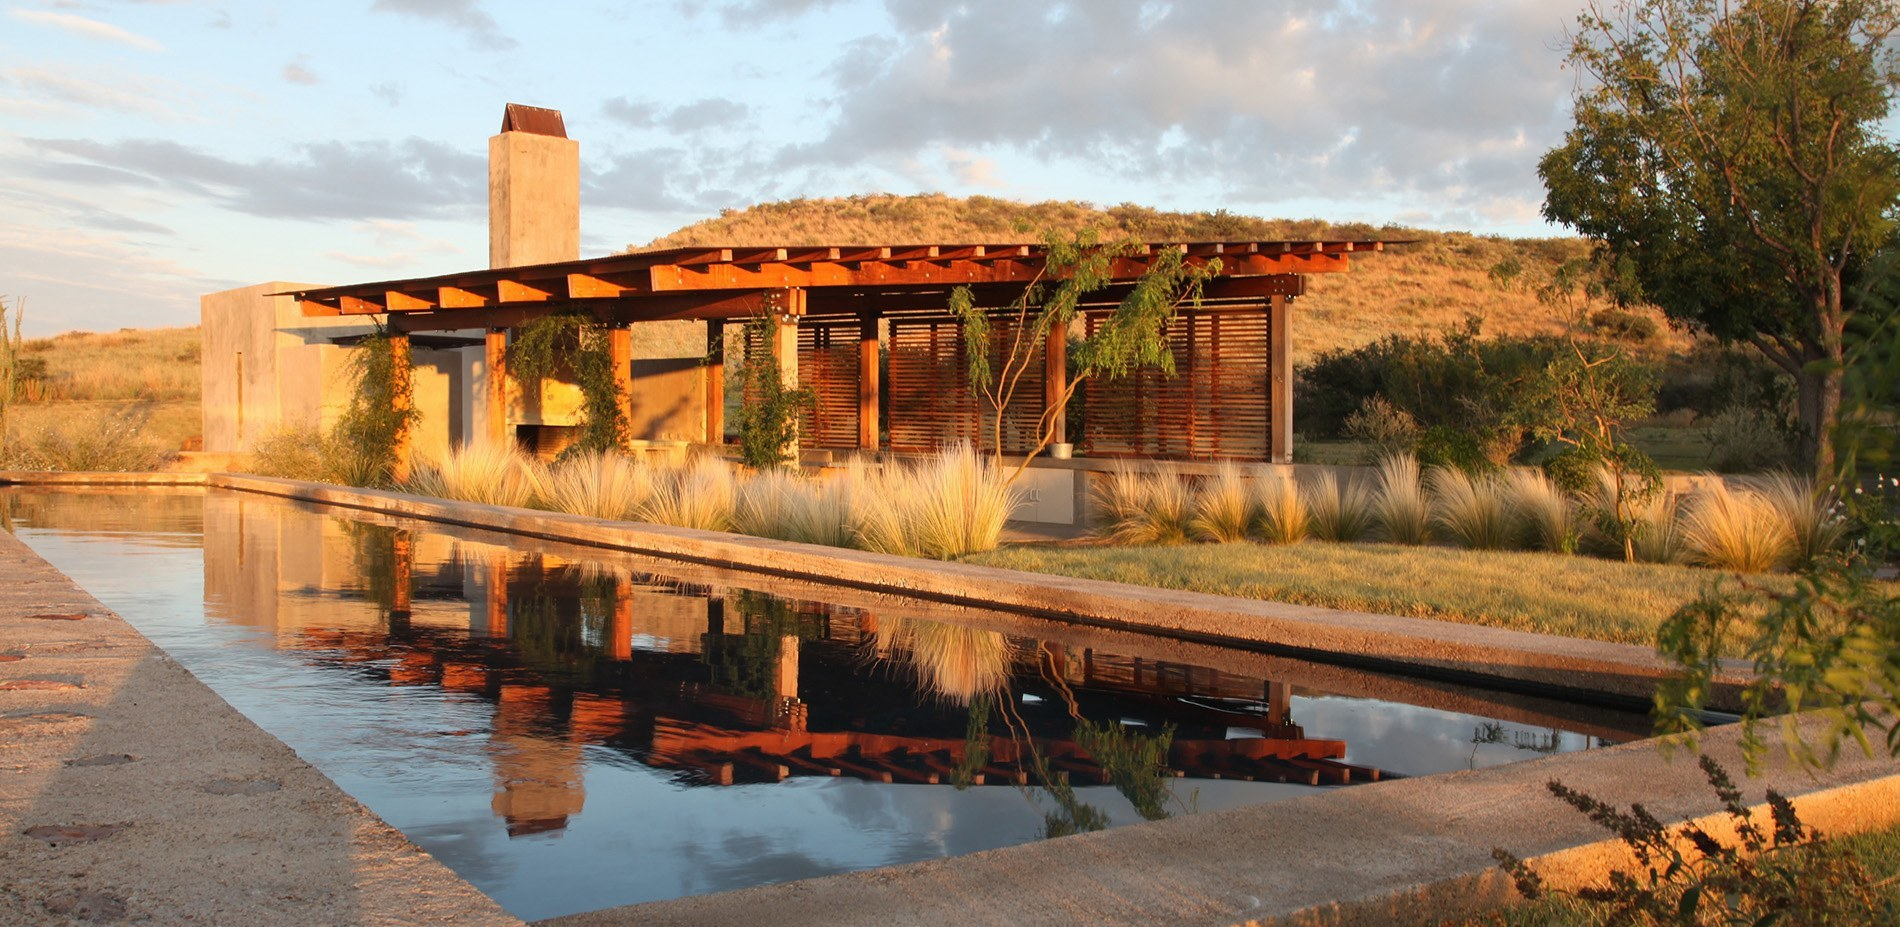 West Texas Ranch | 2014 ASLA Professional Awards